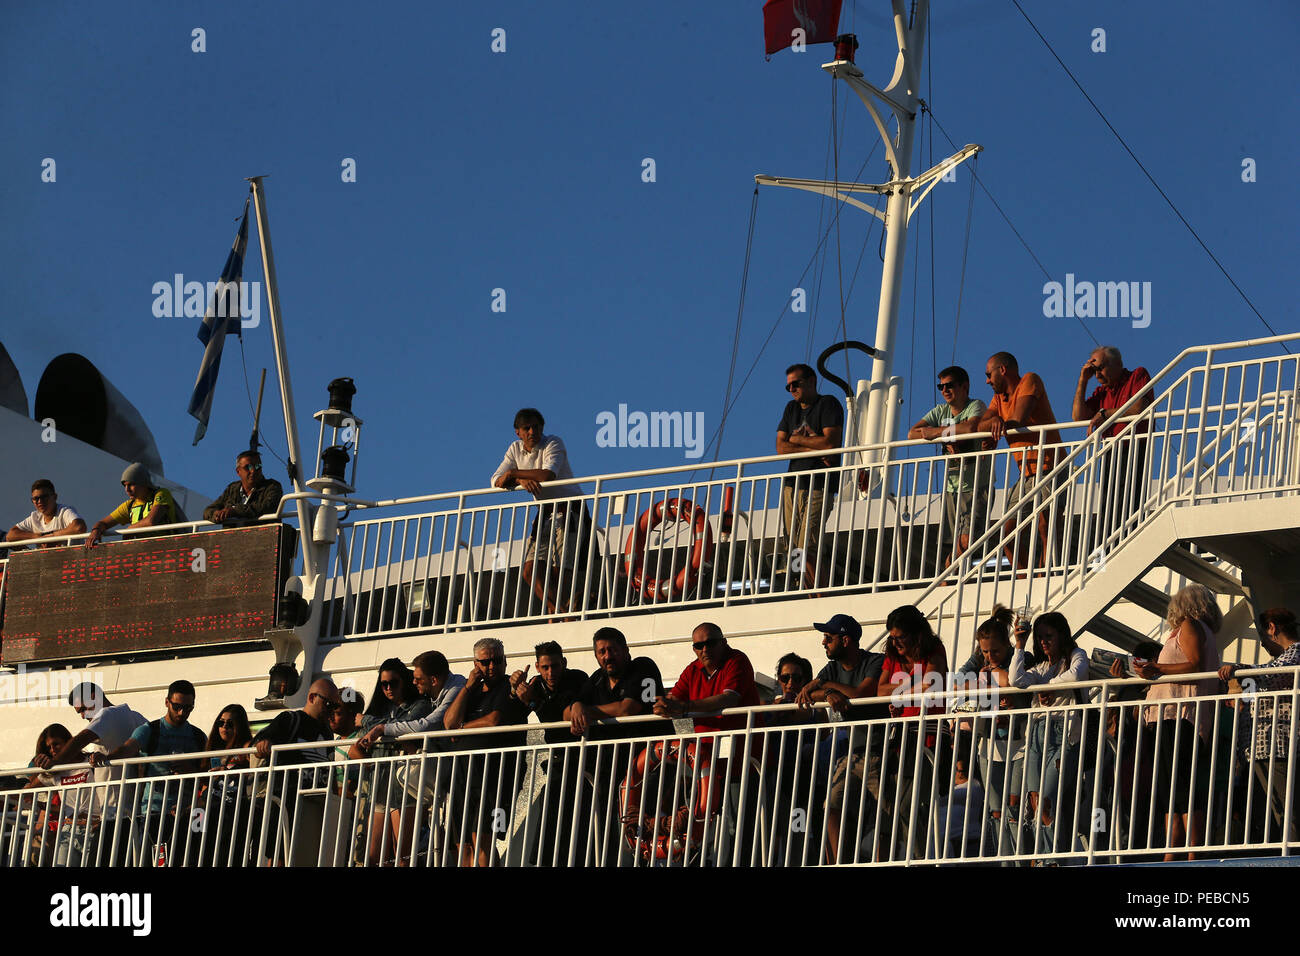 Piraeus, Greece. 14th Aug, 2018. Passengers wait on deck of a ferry ready to depart from Piraeus, ahead of the traditional mid-August exodus around Aug. 15, a national holiday, in Piraeus, Greece, on Aug. 14, 2018. Credit: Marios Lolos/Xinhua/Alamy Live News - Stock Image